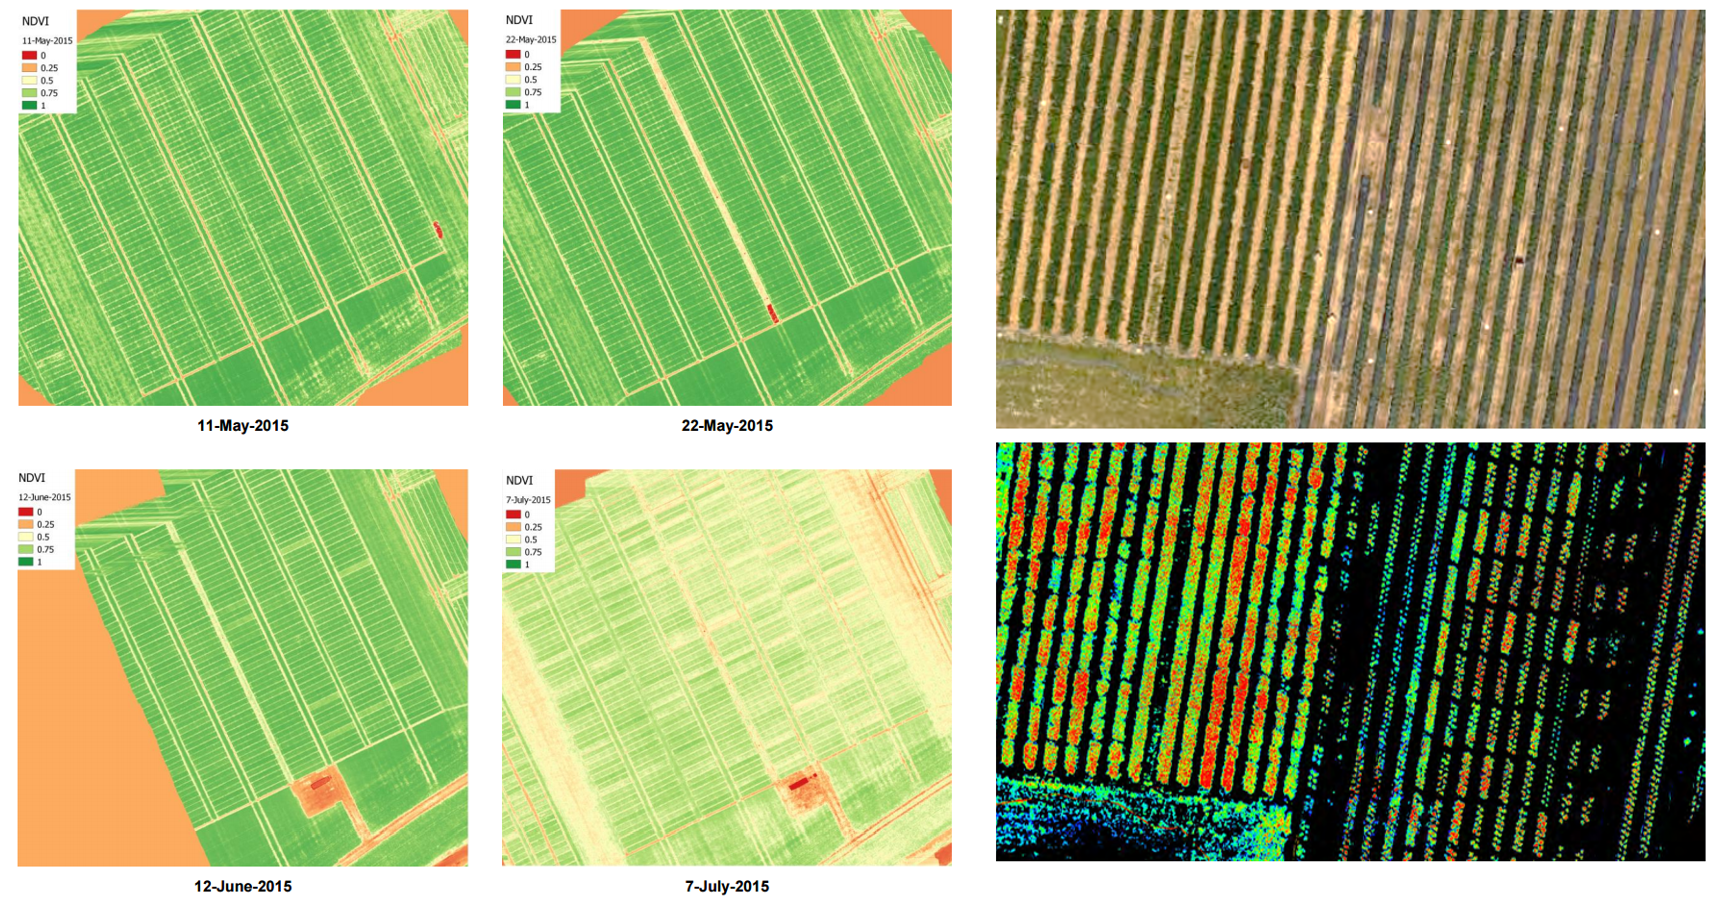 Orthophoto hyperspectral aerial images of strawberry test field in Belgium: NDVI images (left) and chlorophyll index map (right) to support precision agriculture decisions – Courtesy of VITO and pcfruit.